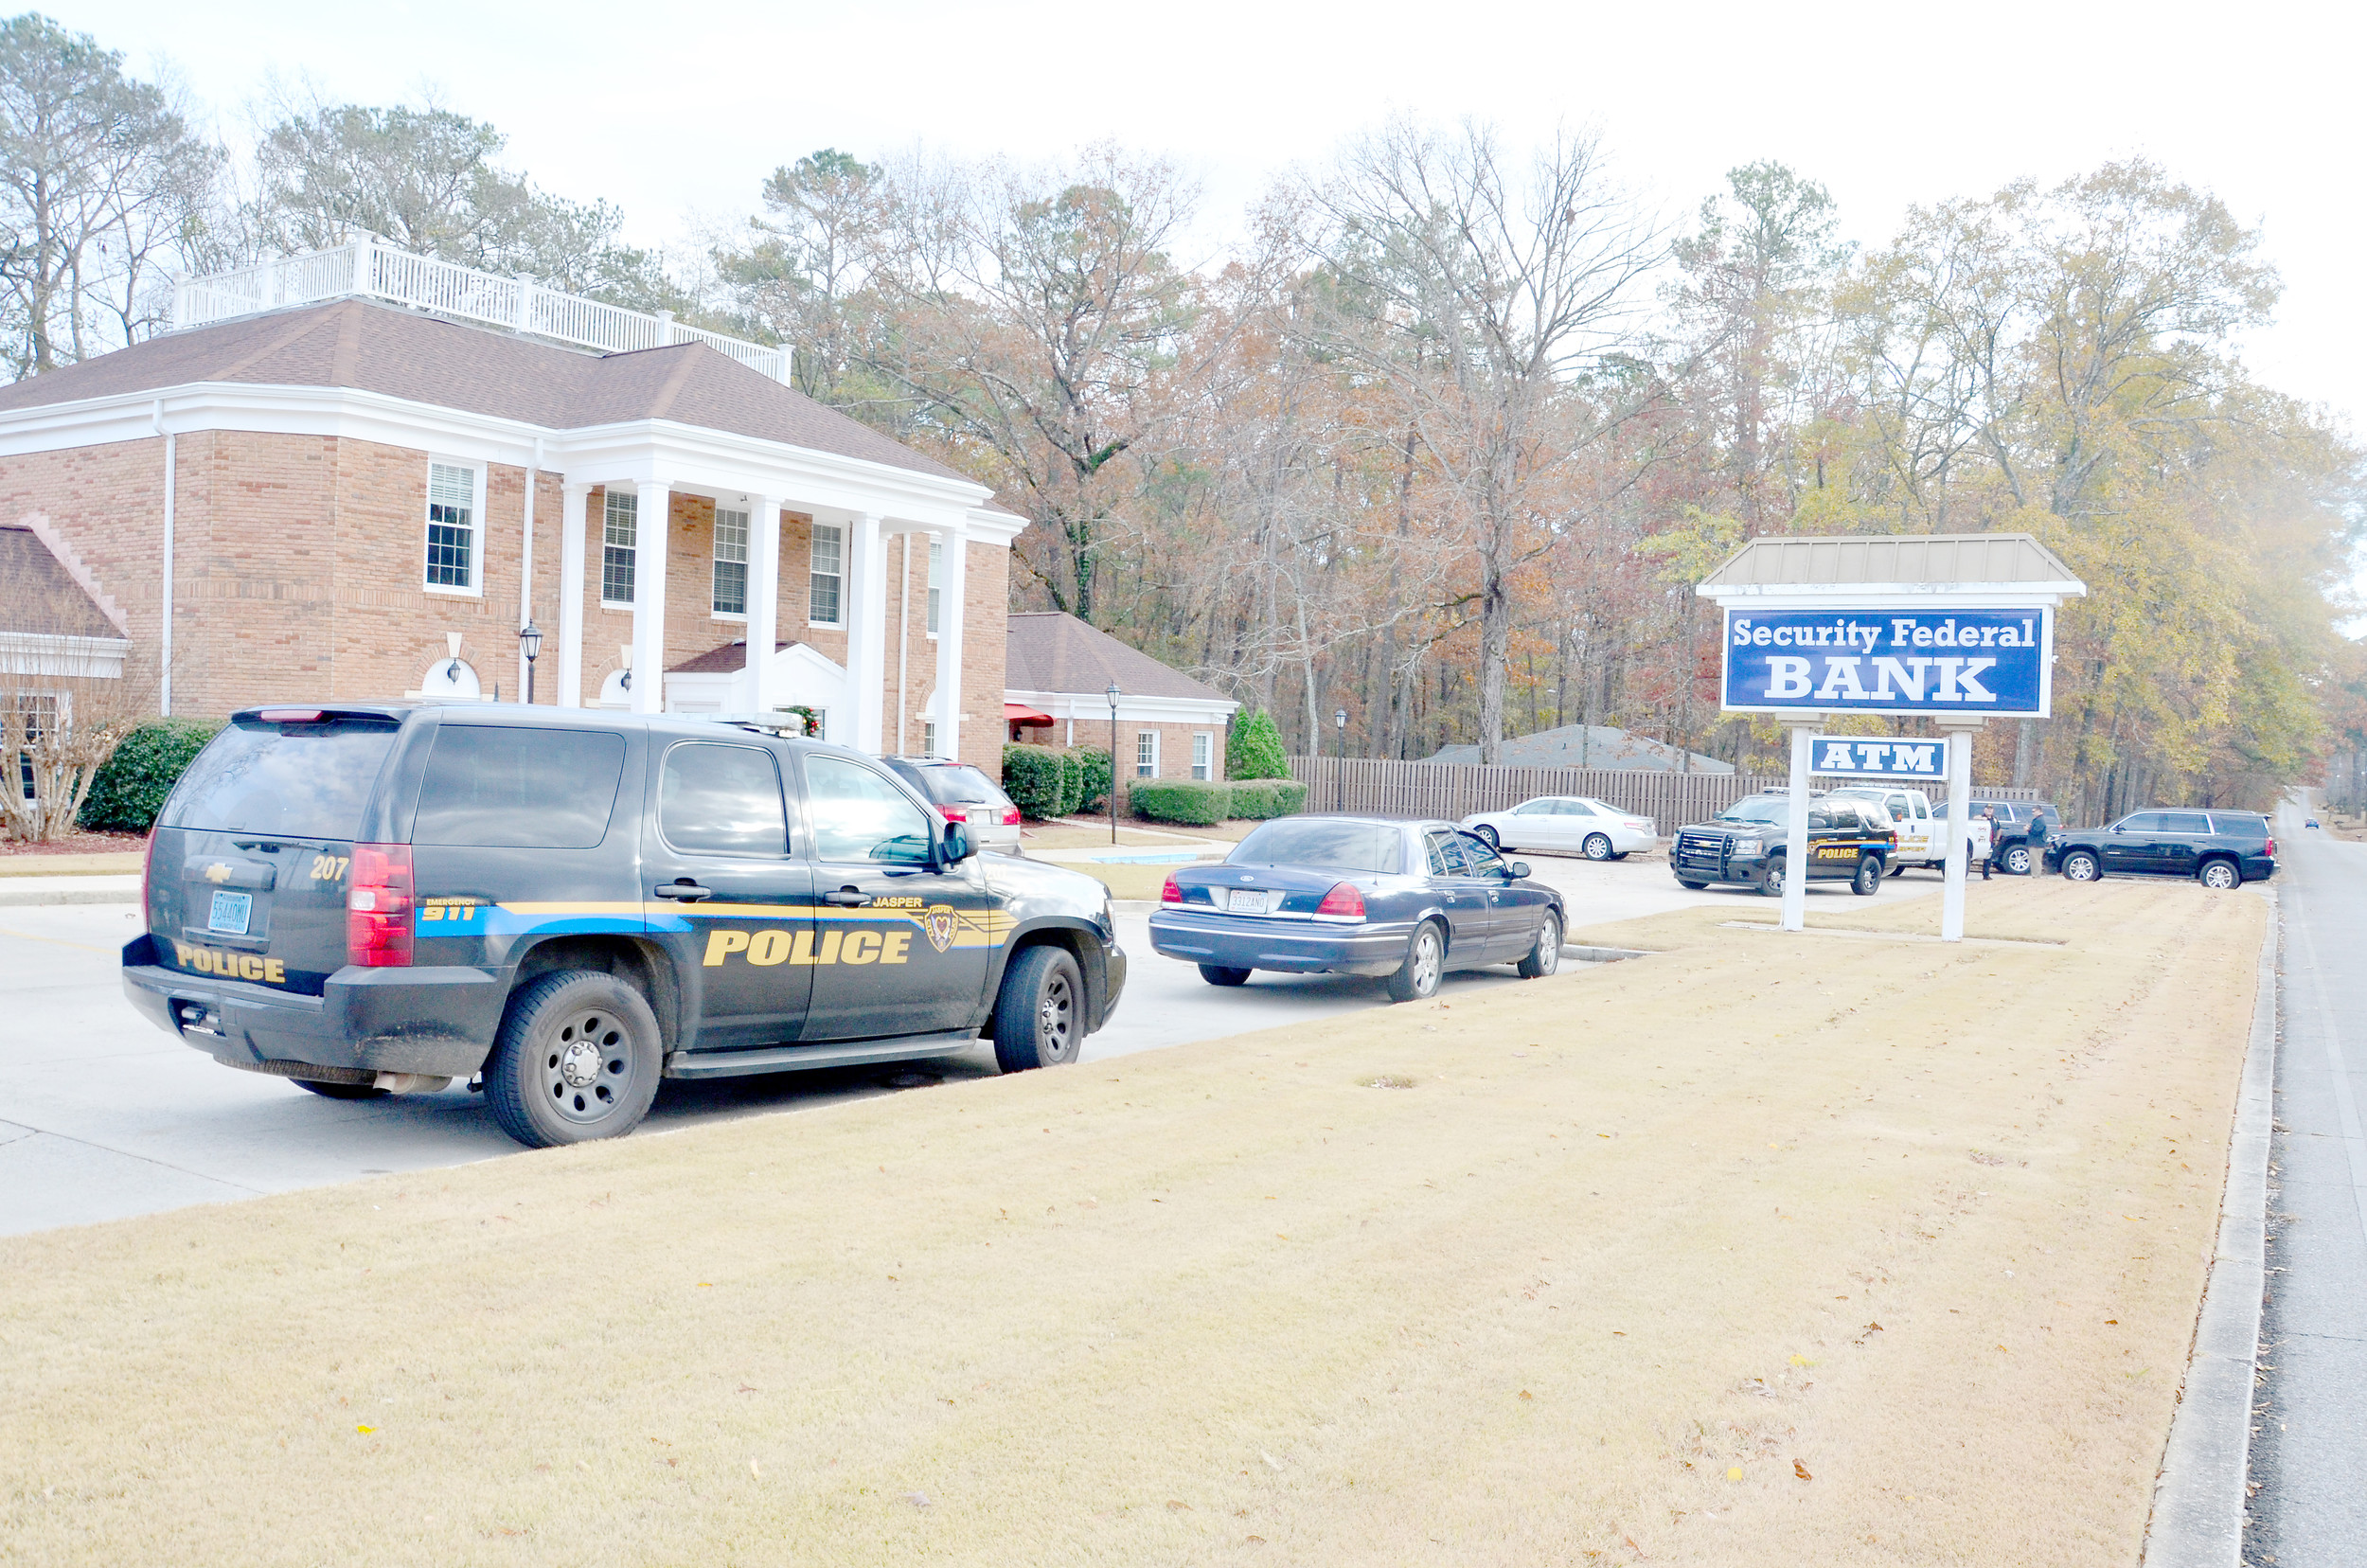 Security Federal Bank robbed at gunpoint | Daily Mountain Eagle